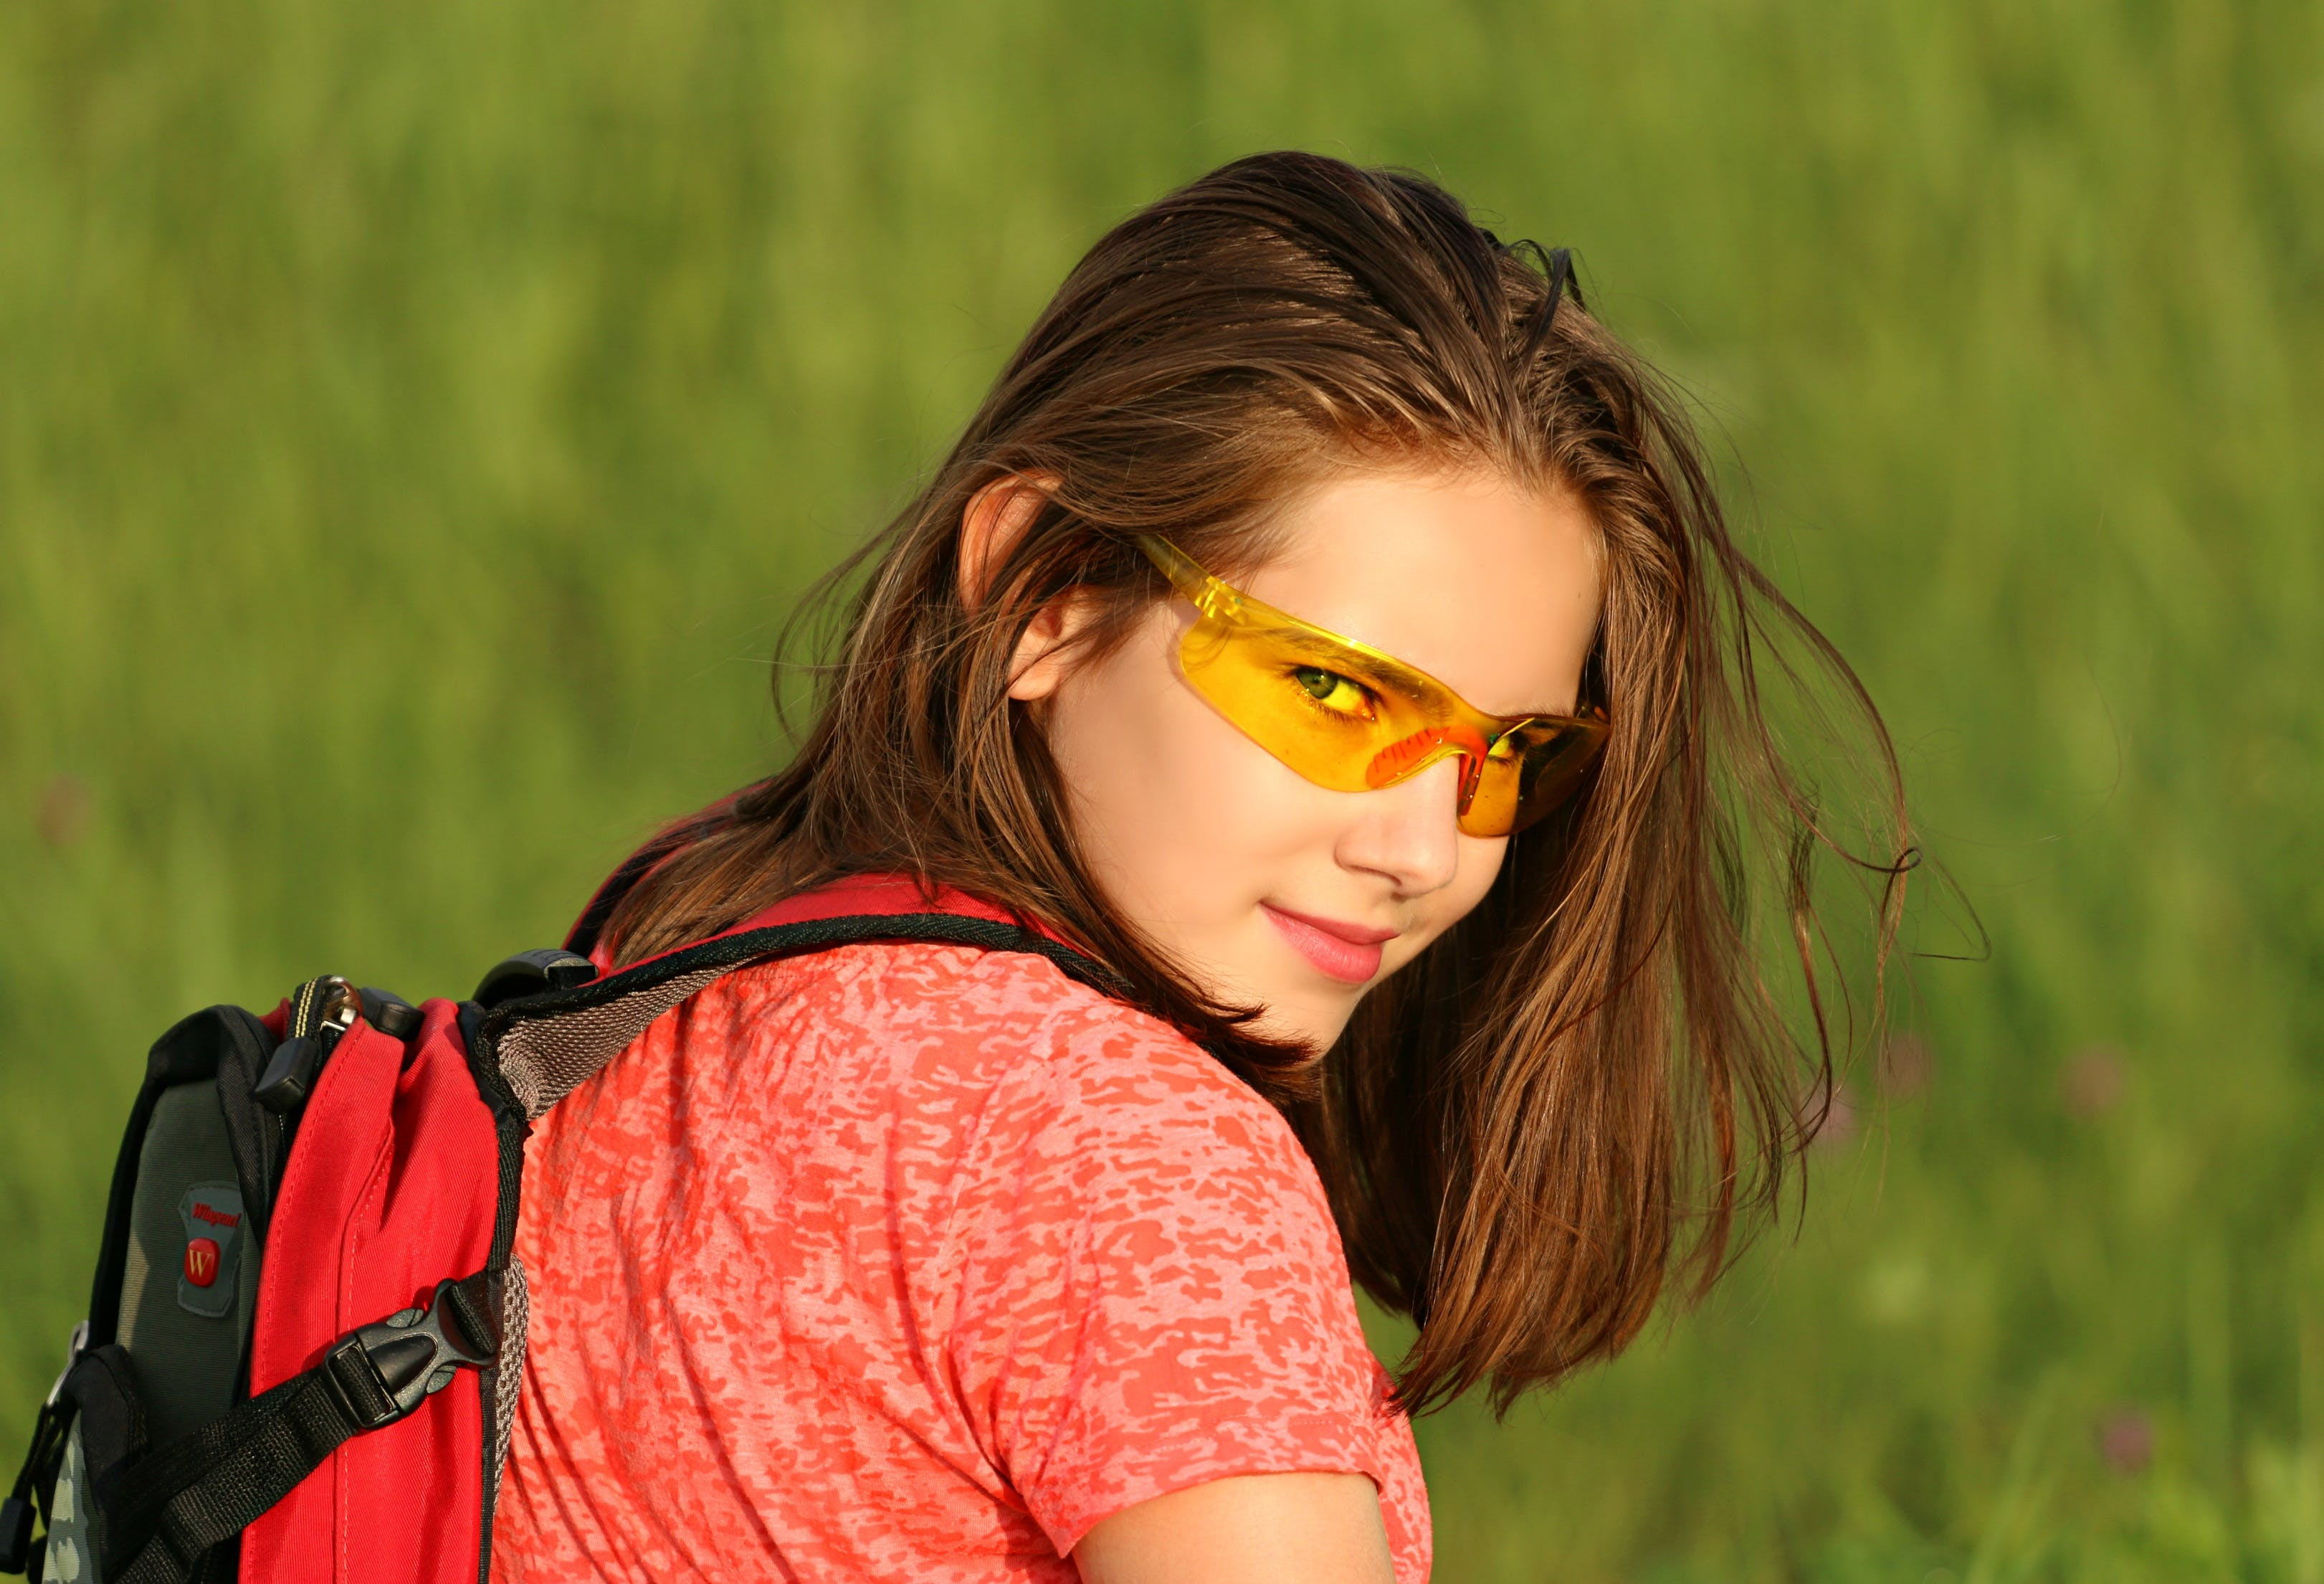 Woman in Red Shirt Wearing Backpack Surrounded by Green Grass Field